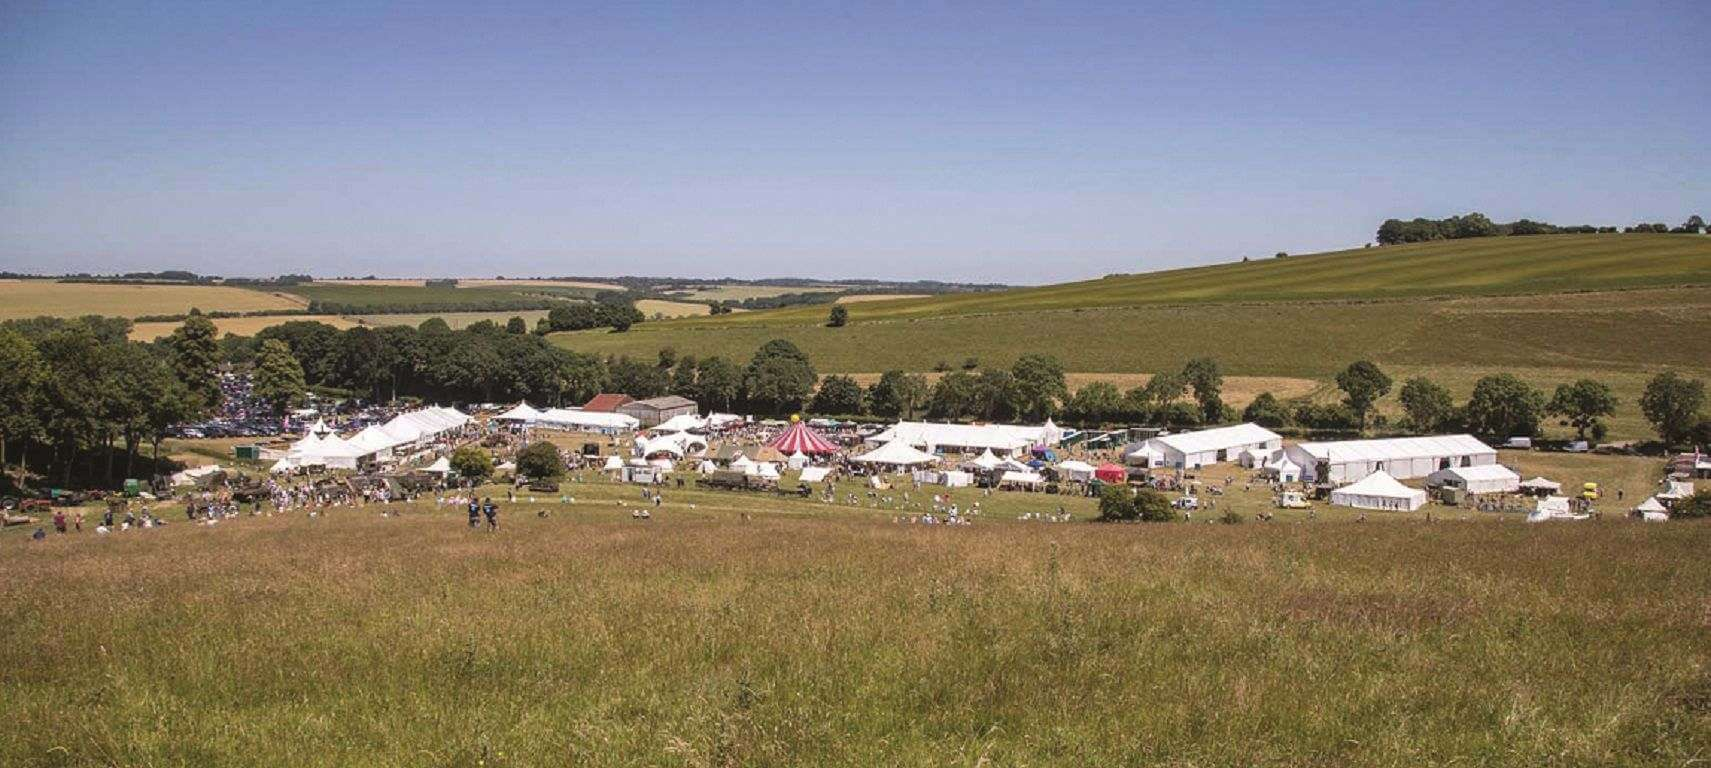 A view across hills and fields with the white tents of the festival.